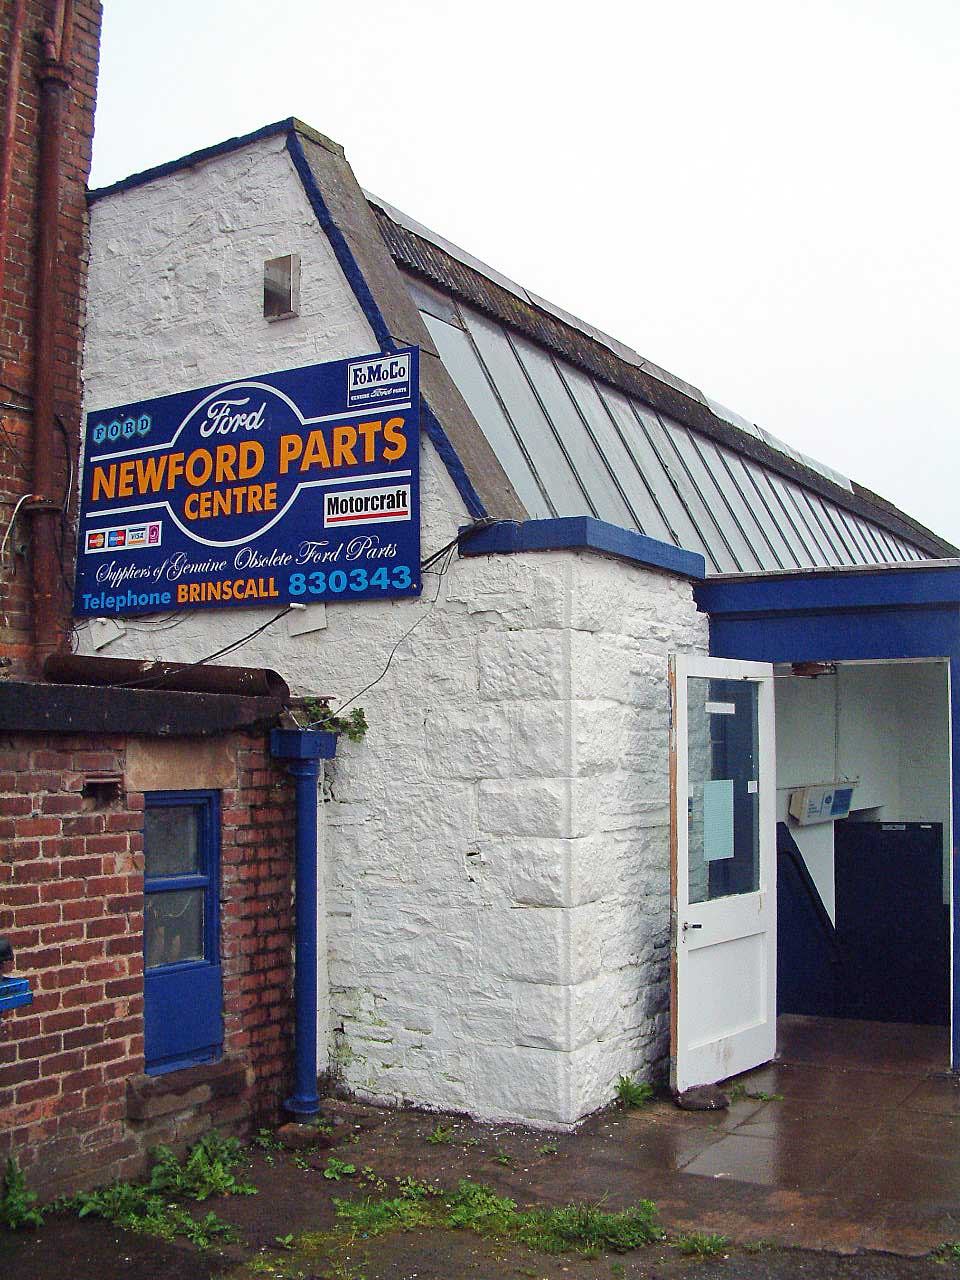 Newford 1 Ford seizes domain name of reputable Lancashire company Newfordcarparts.co.uk